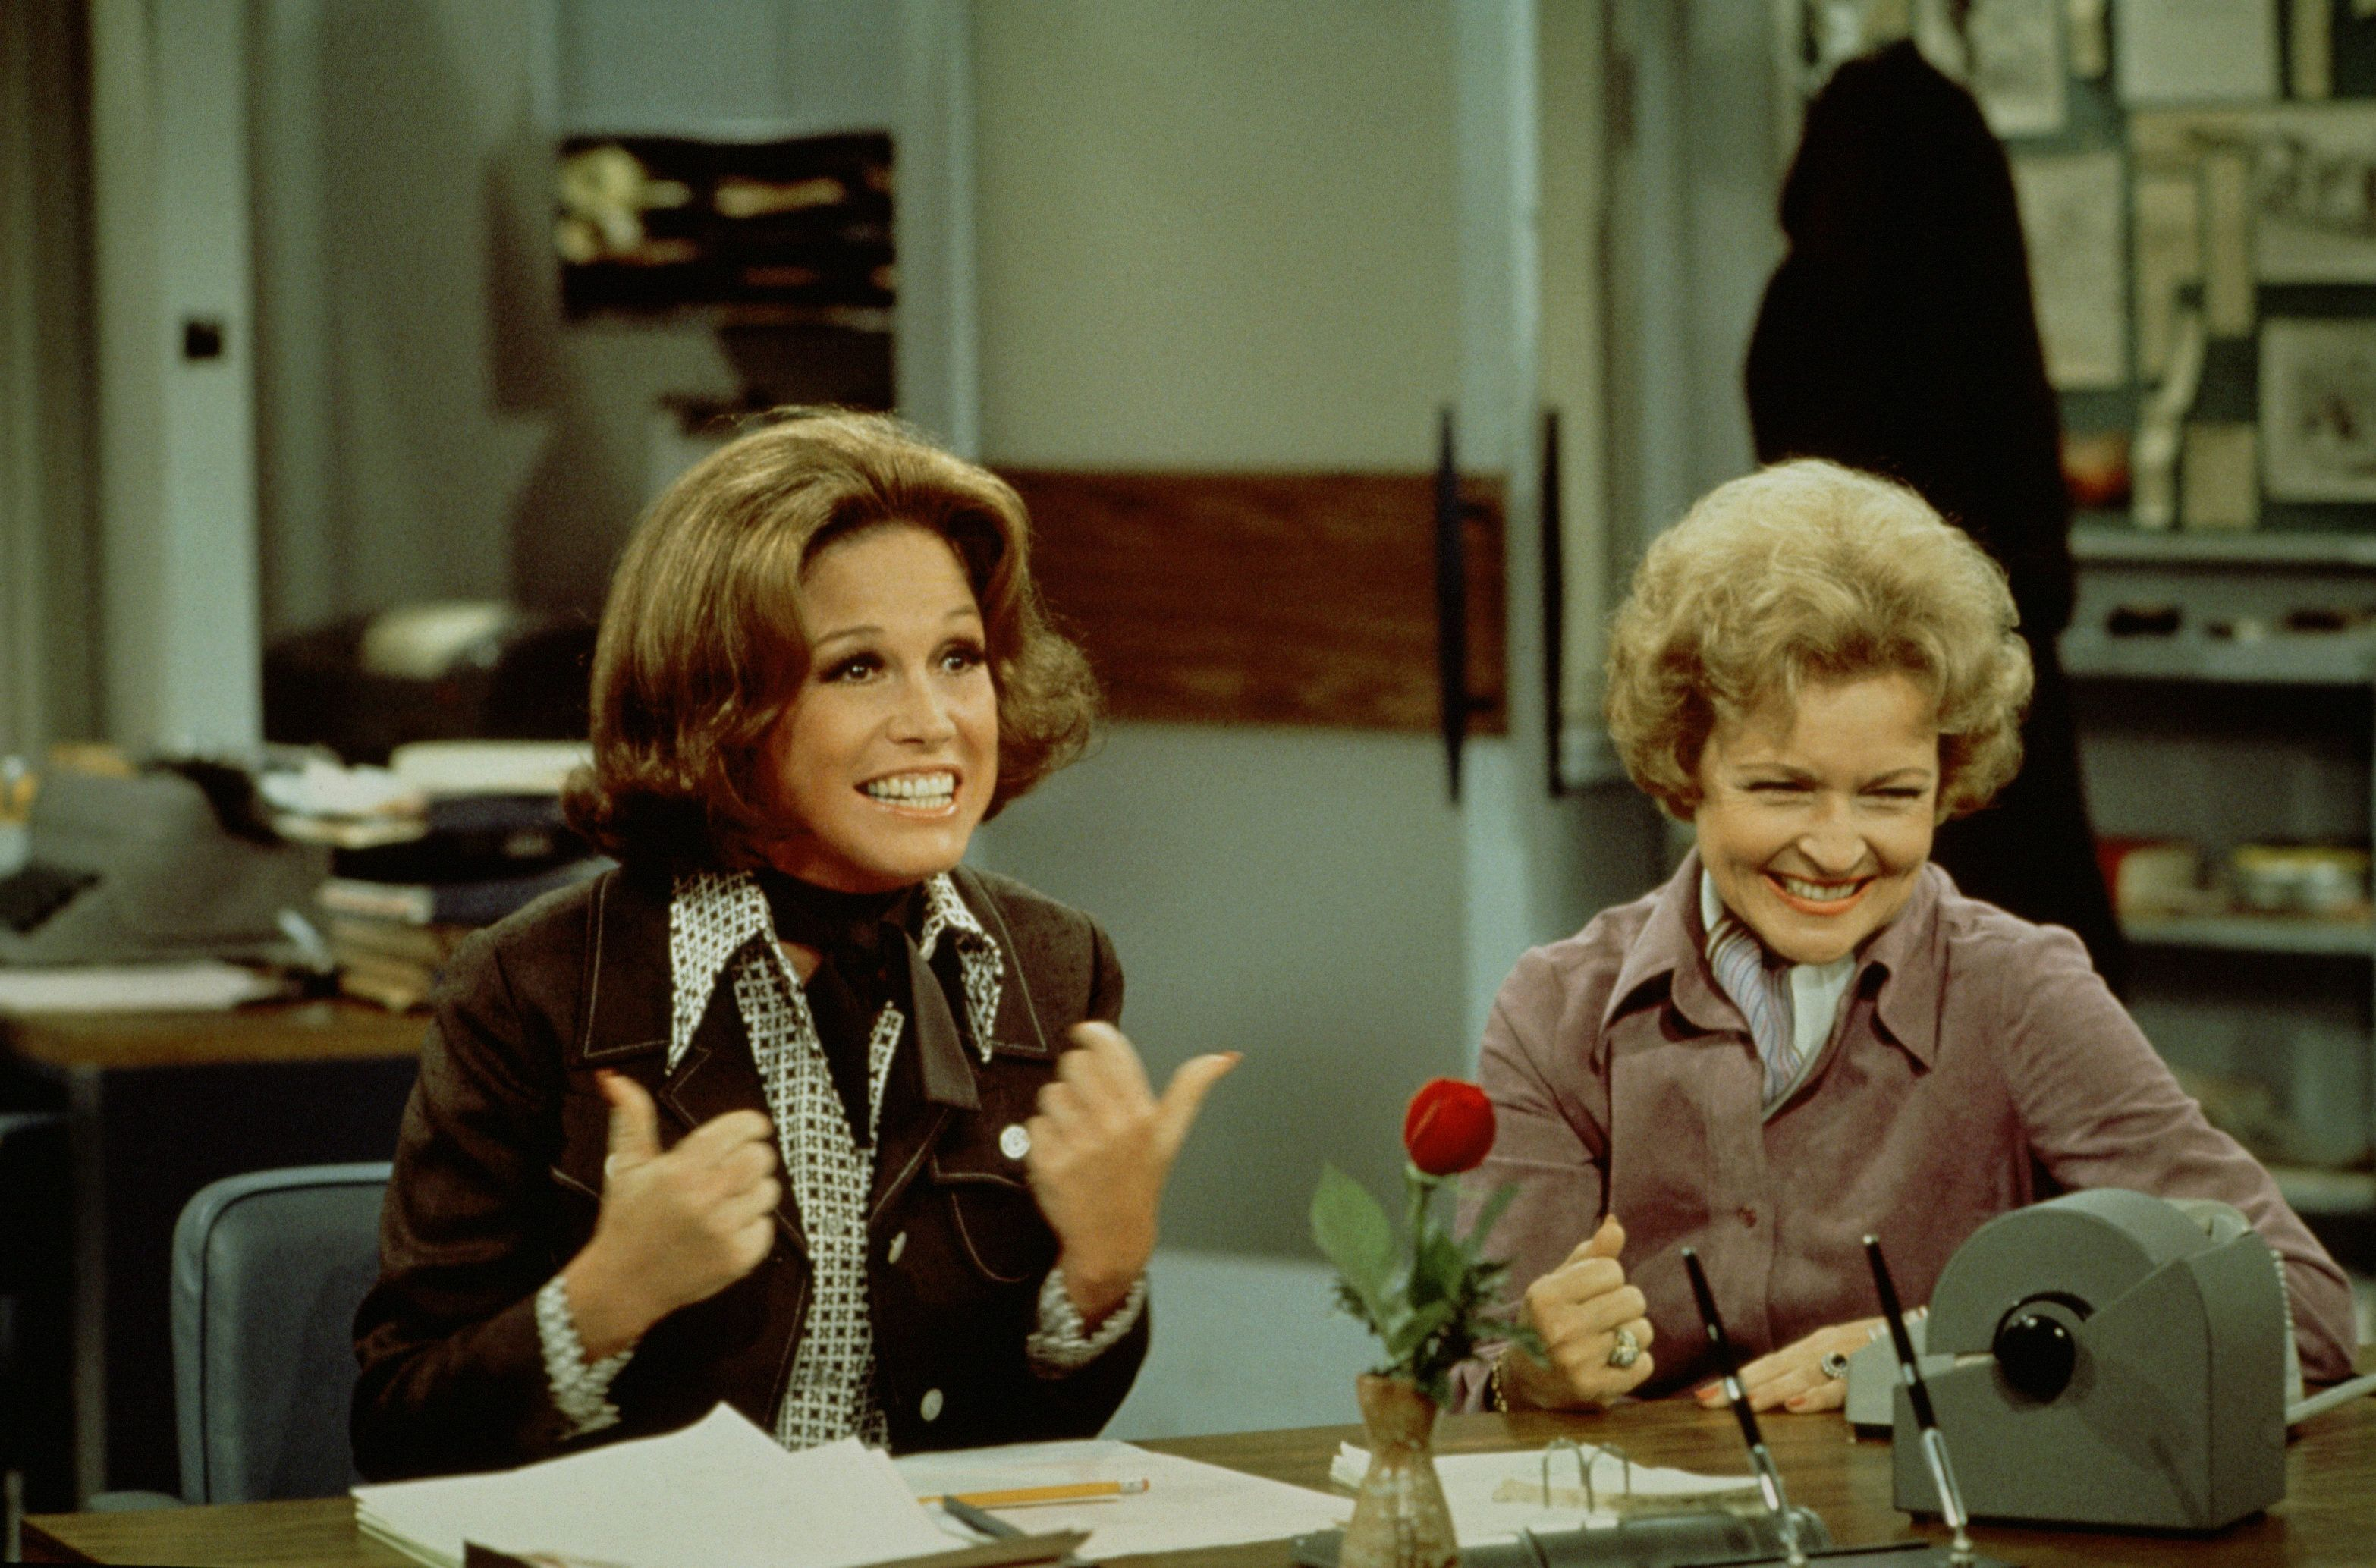 American actress Mary Tyler Moore (as Mary Richards) (left) gives a 'thumbs up' sign as she sits at her desk with Betty White (as Sue Ann Nivens) in a scene from 'The Mary Tyler Moore Show' (also known as 'Mary Tyler Moore'), Los Angeles, California, 1975. (Photo by CBS Photo Archive/Getty Images)